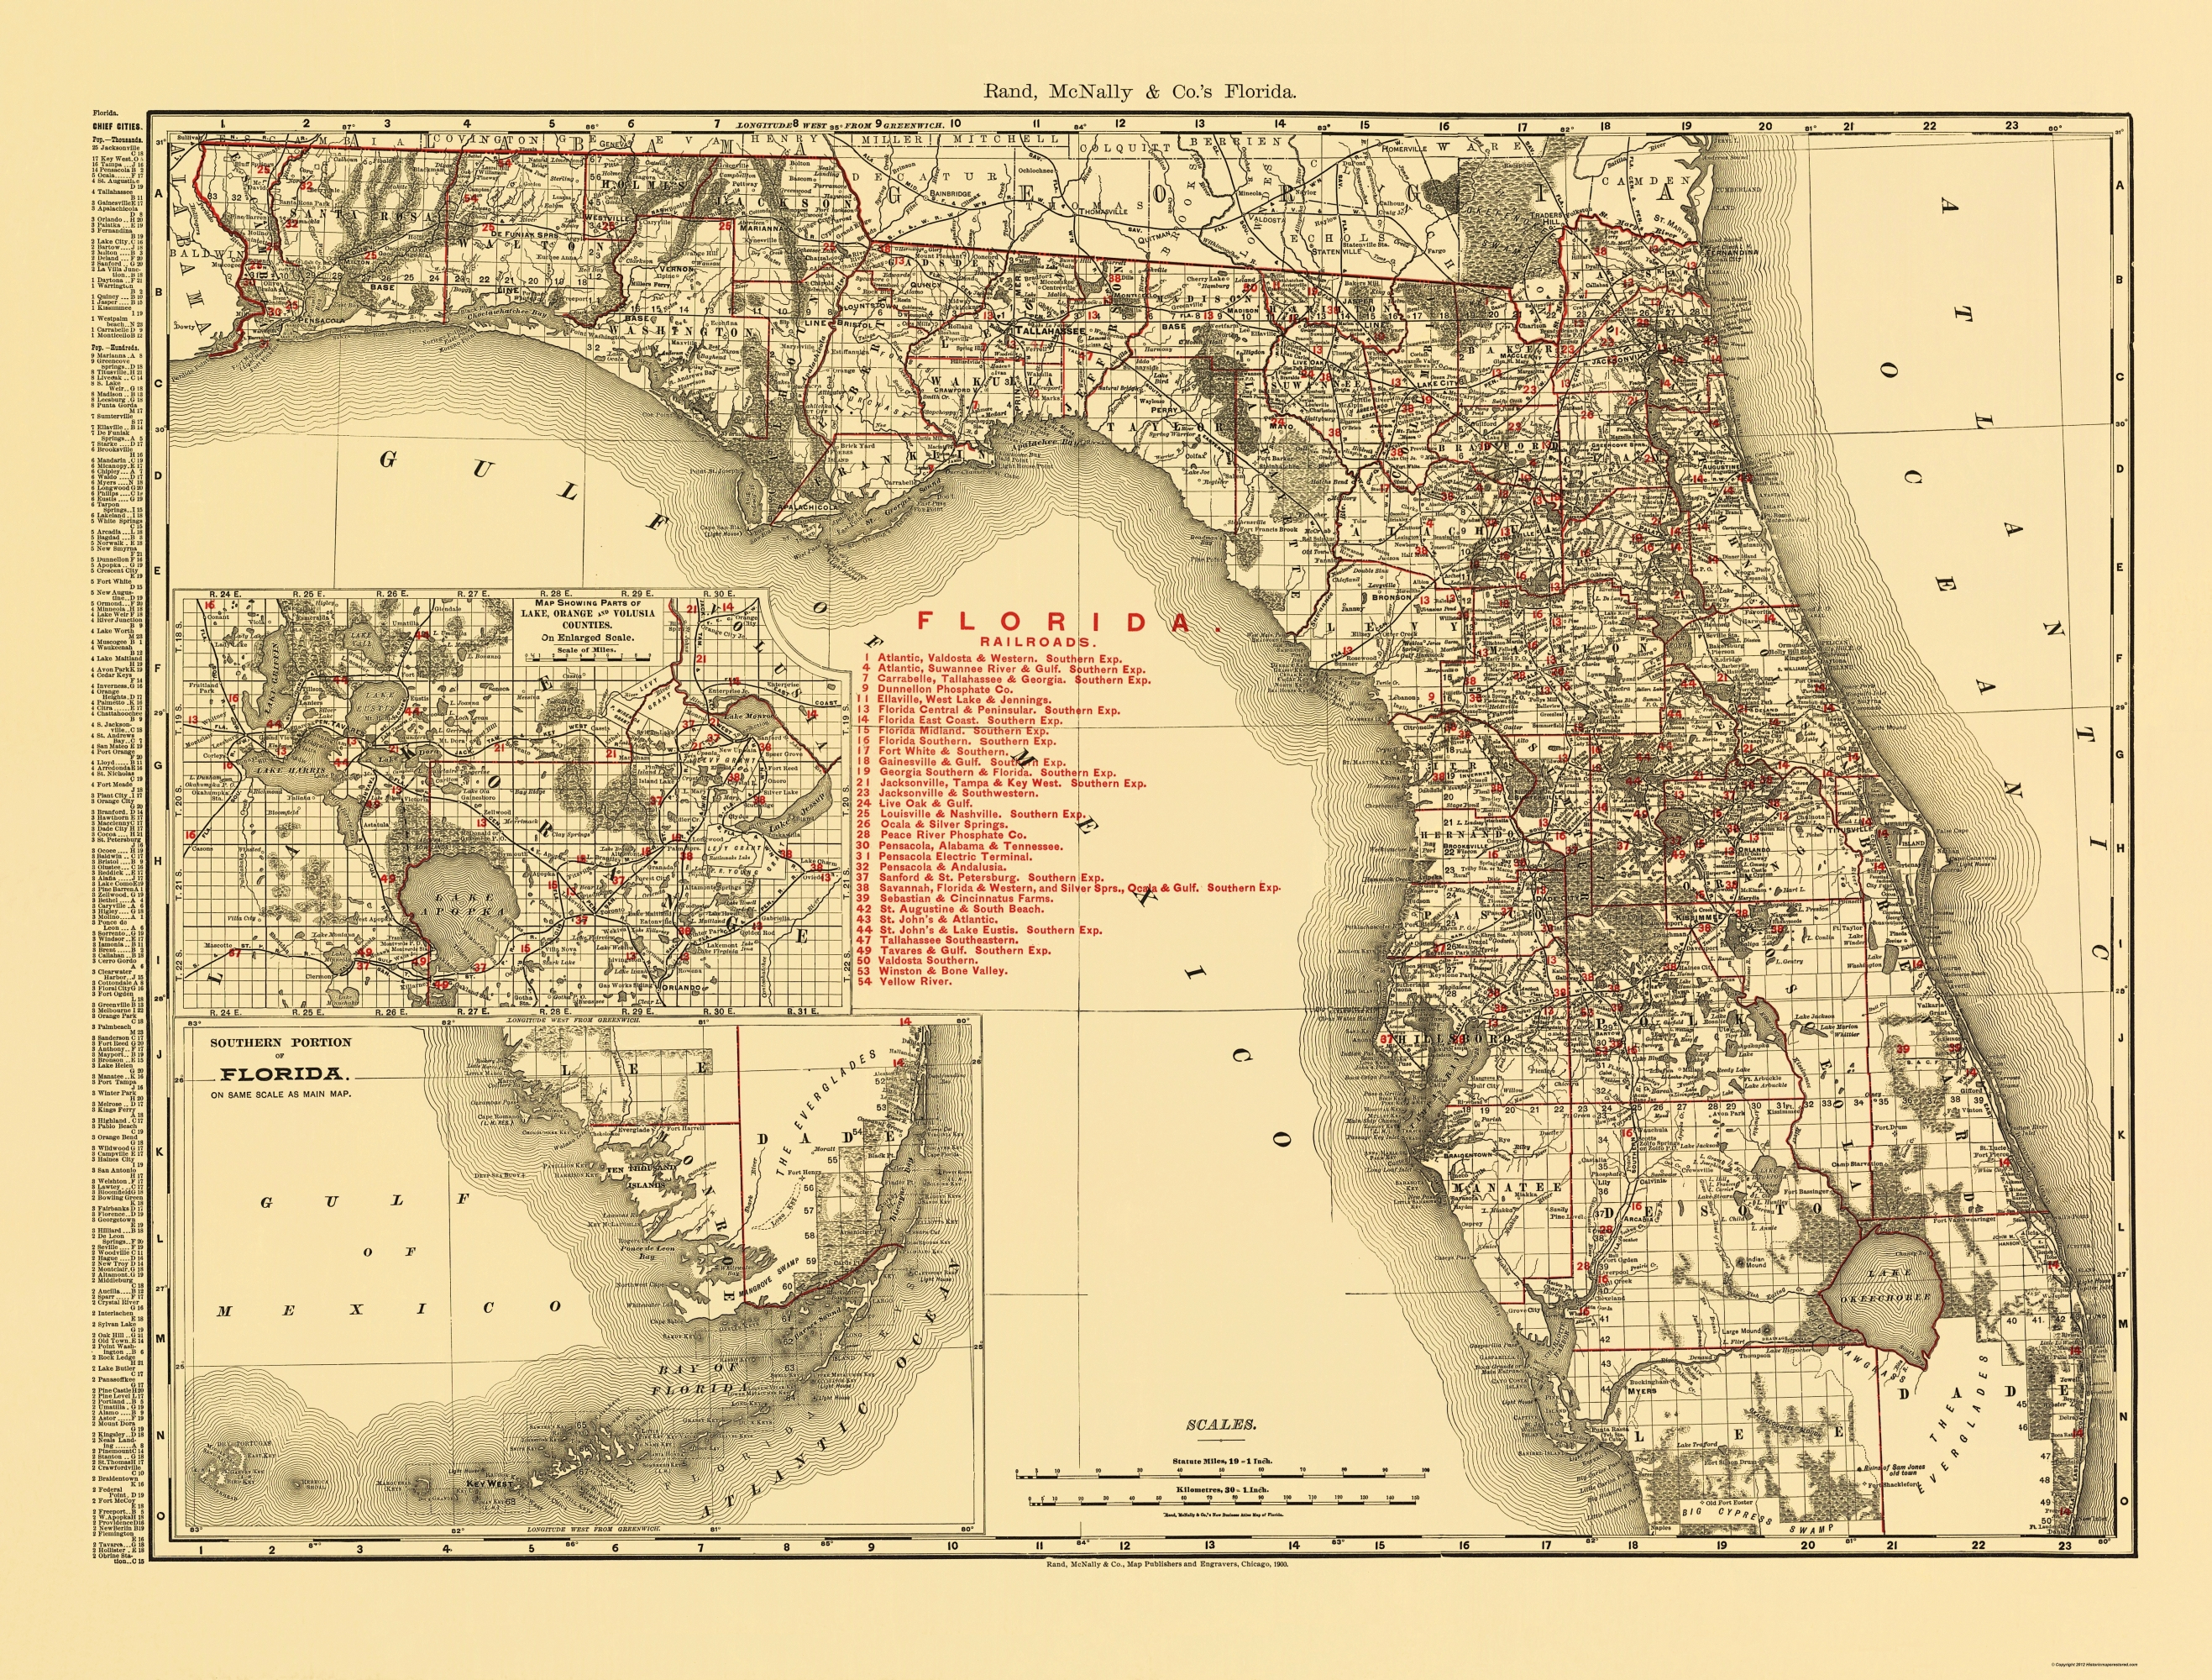 Old State Map - Florida - Rand Mcnally 1900 - Old Florida Map